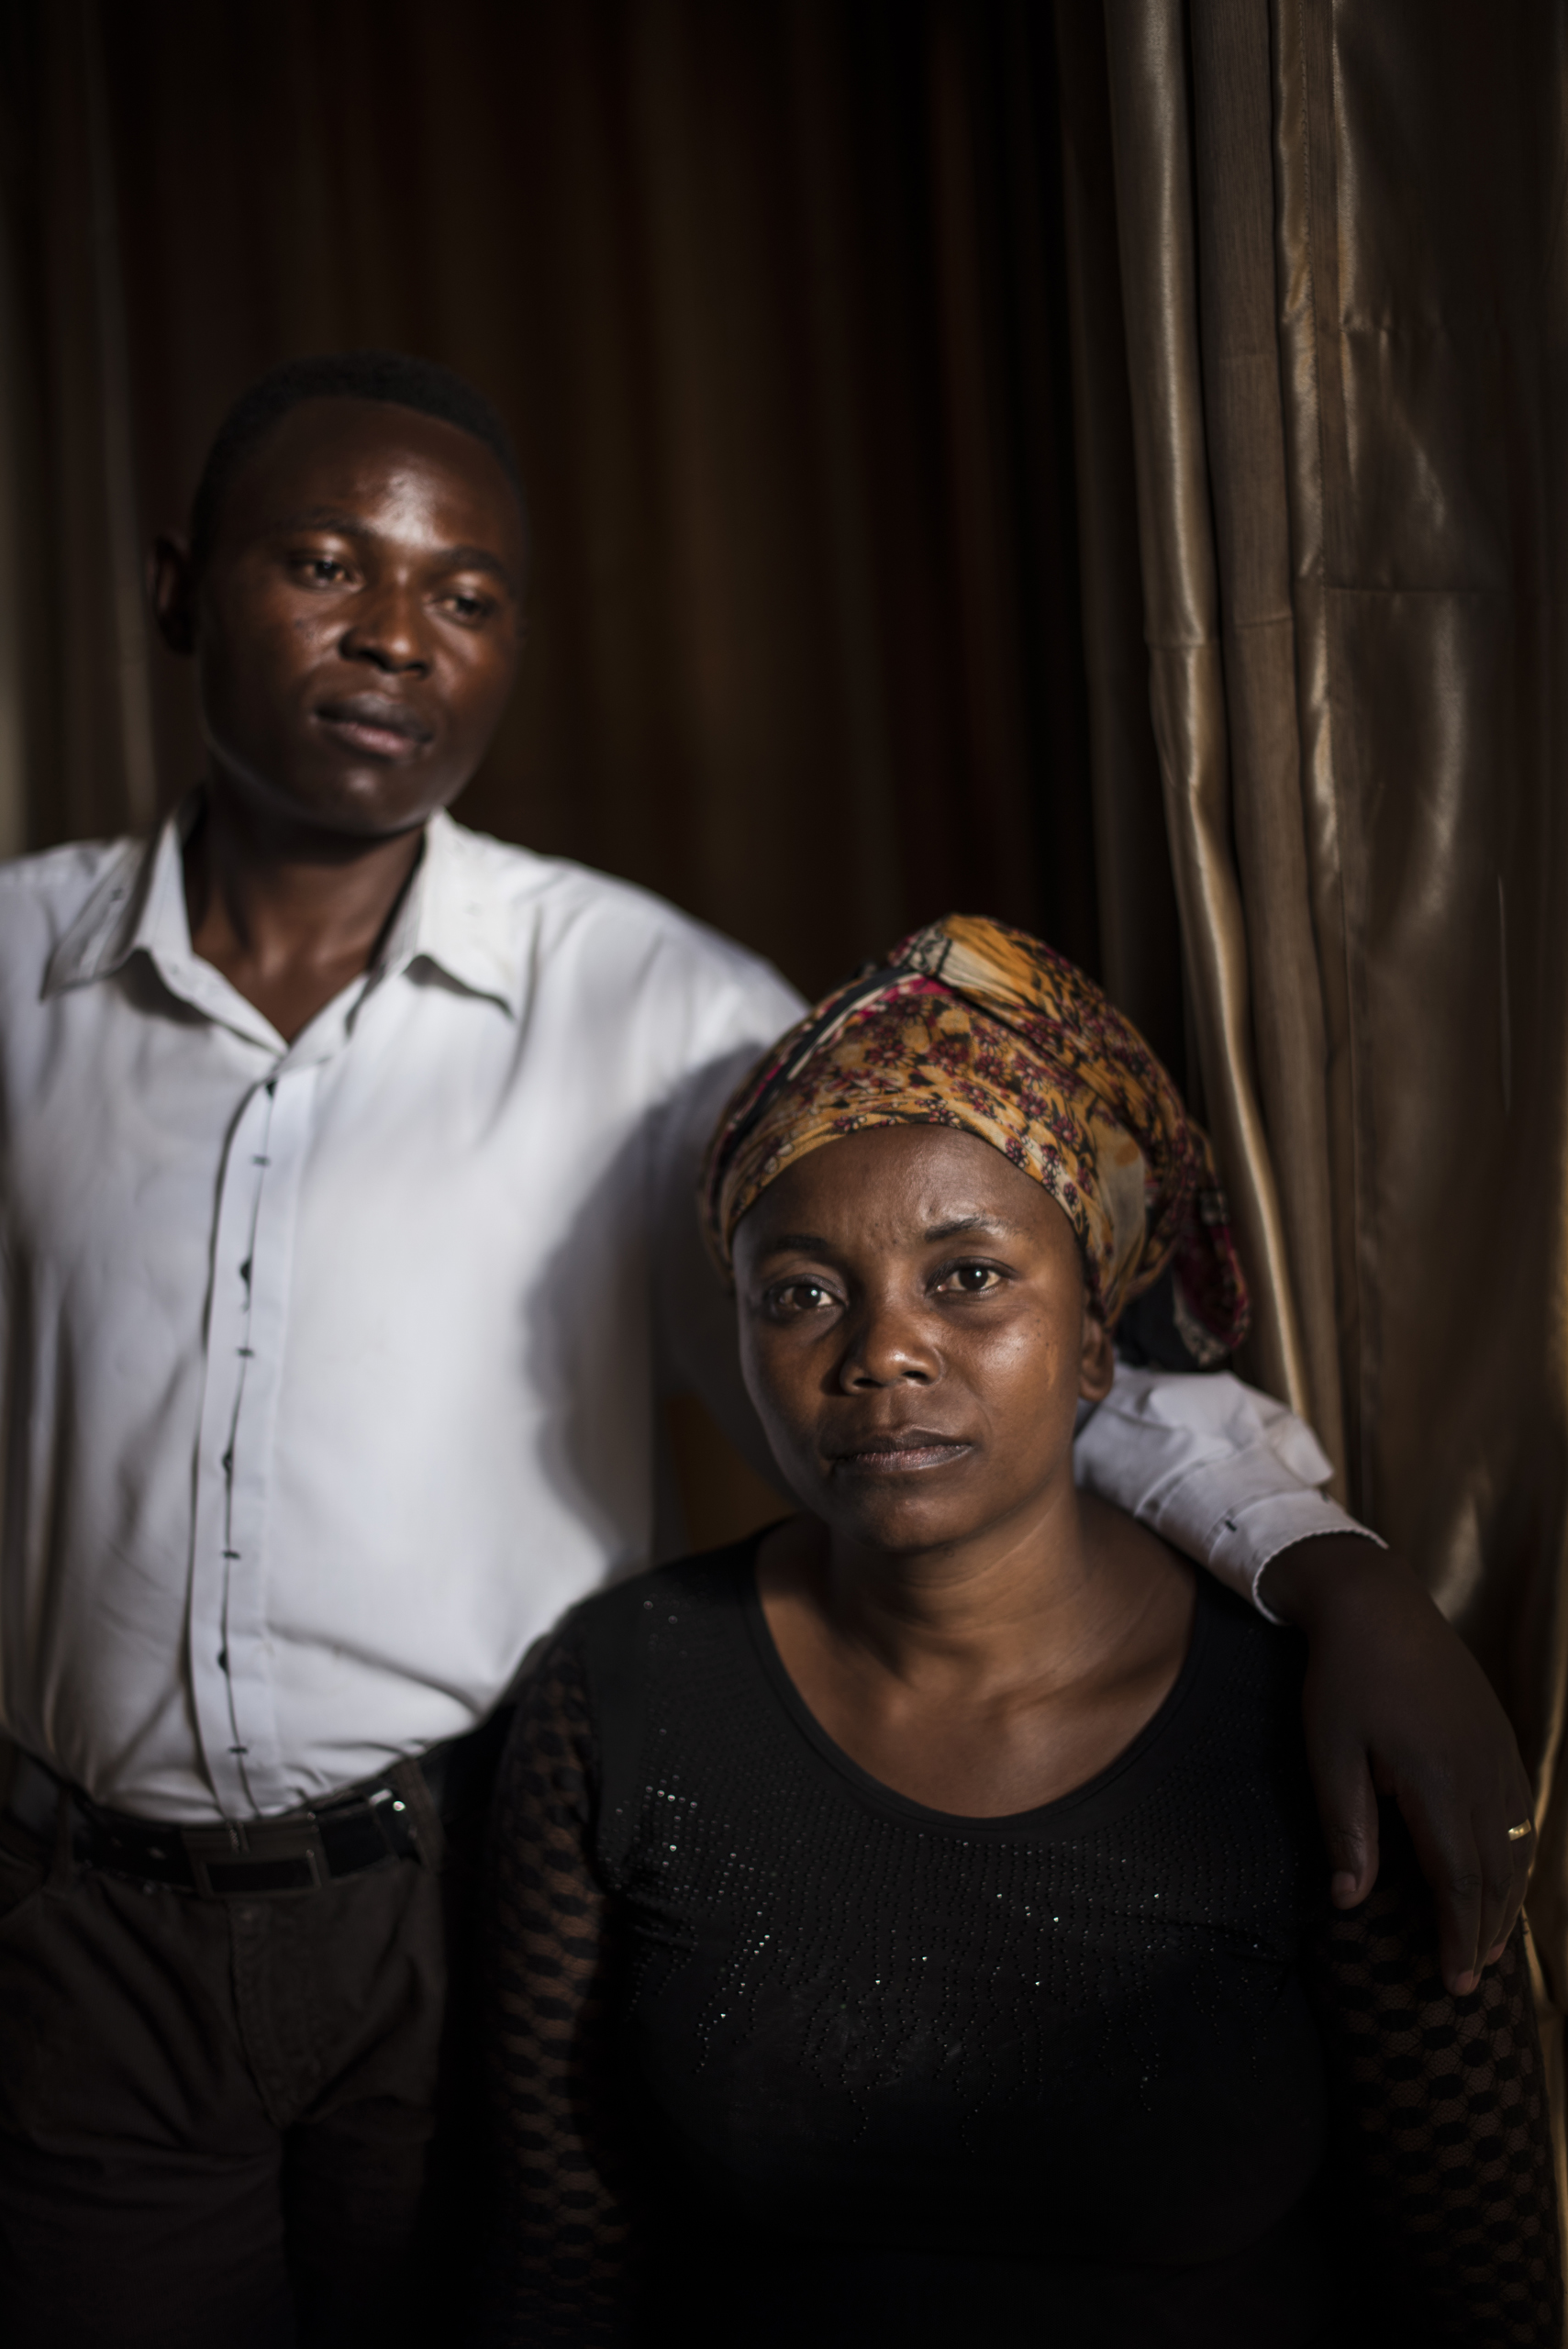 Kyalu Katentula, 40, and her husband, Abby Tagalog, 38, pose for a portrait in Goma, the Democratic Republic of Congo, Dec. 6, 2015.  After Kyalu was raped, she was rejected by her husband. They were brought back together by an NGO that fosters dialogue between couples and teaches that  women are not at fault for their rape.